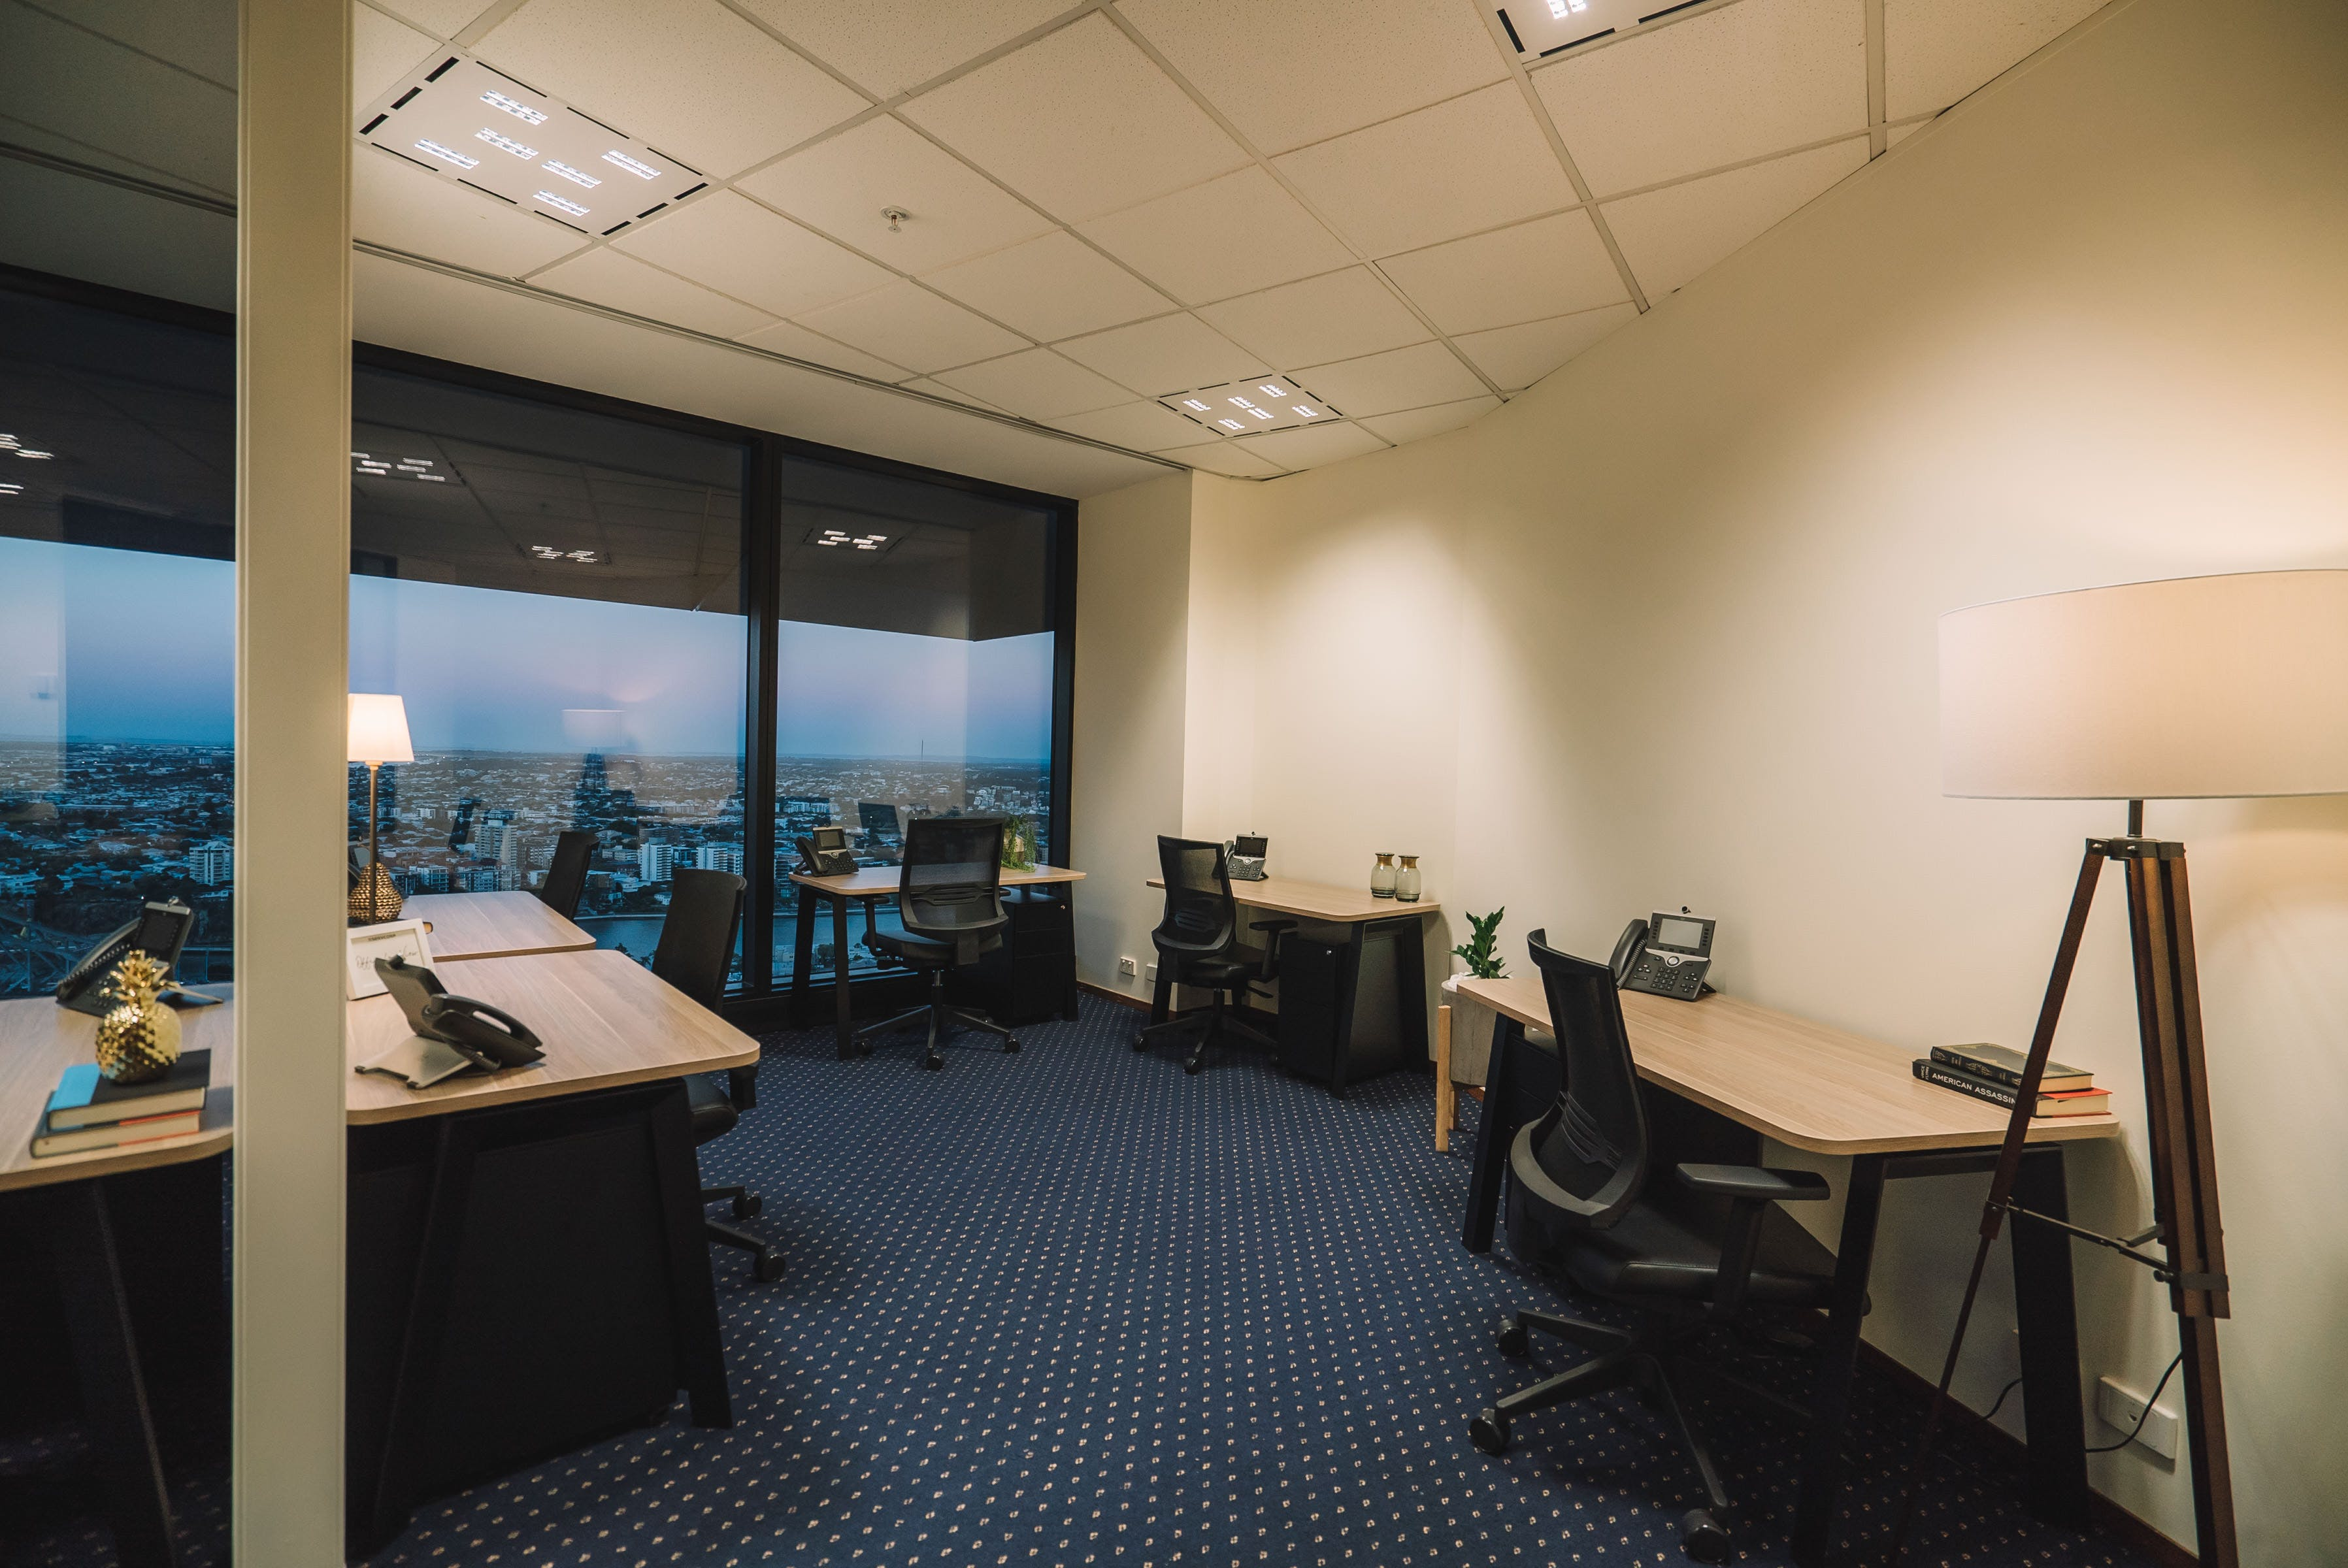 Private Meeting Room for 14, meeting room at The Realm, image 6